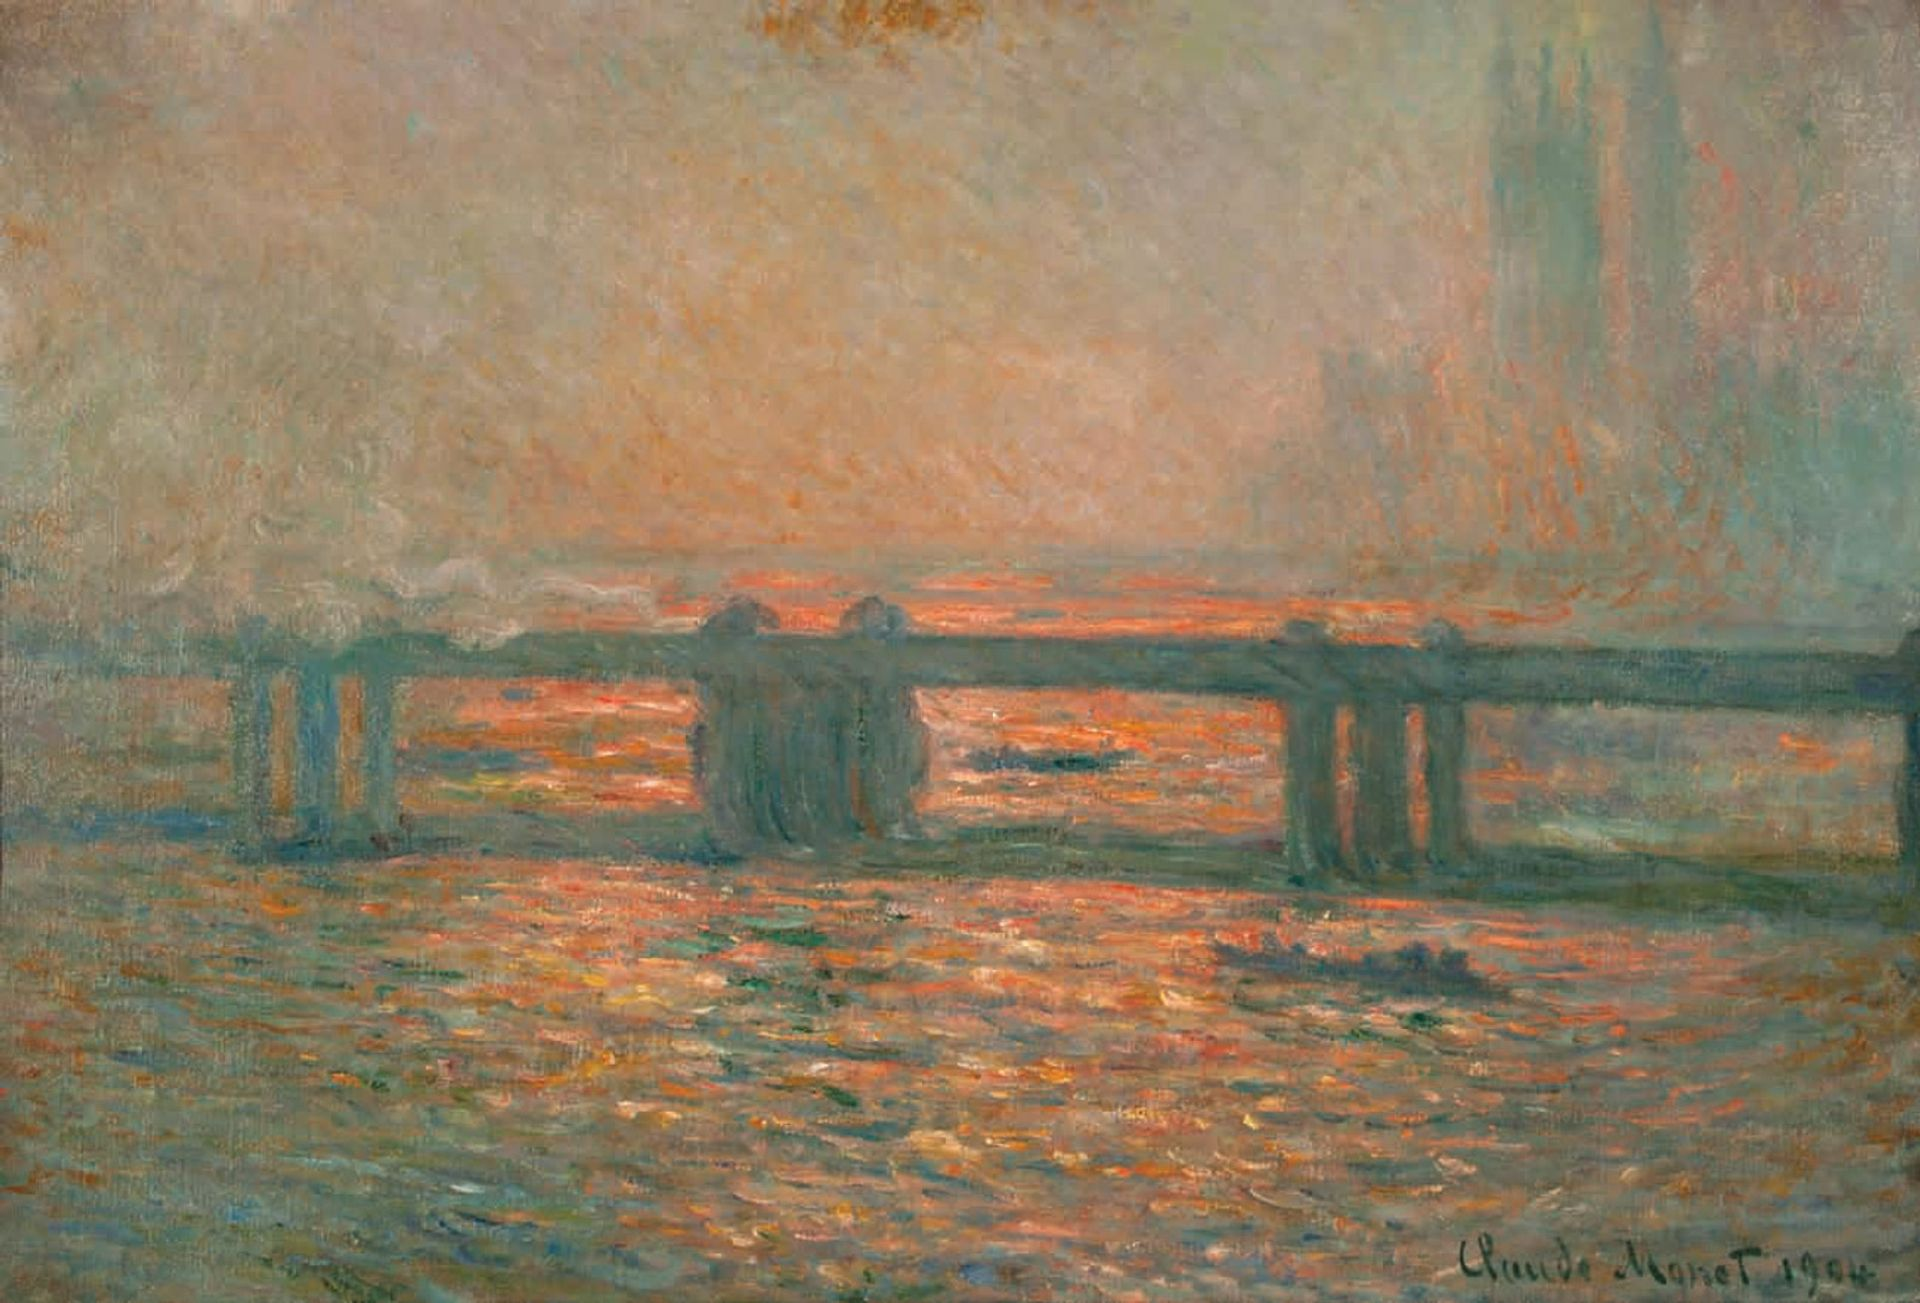 Monet's Charing Cross Bridge (1901-04), started in London, completed in Giverny